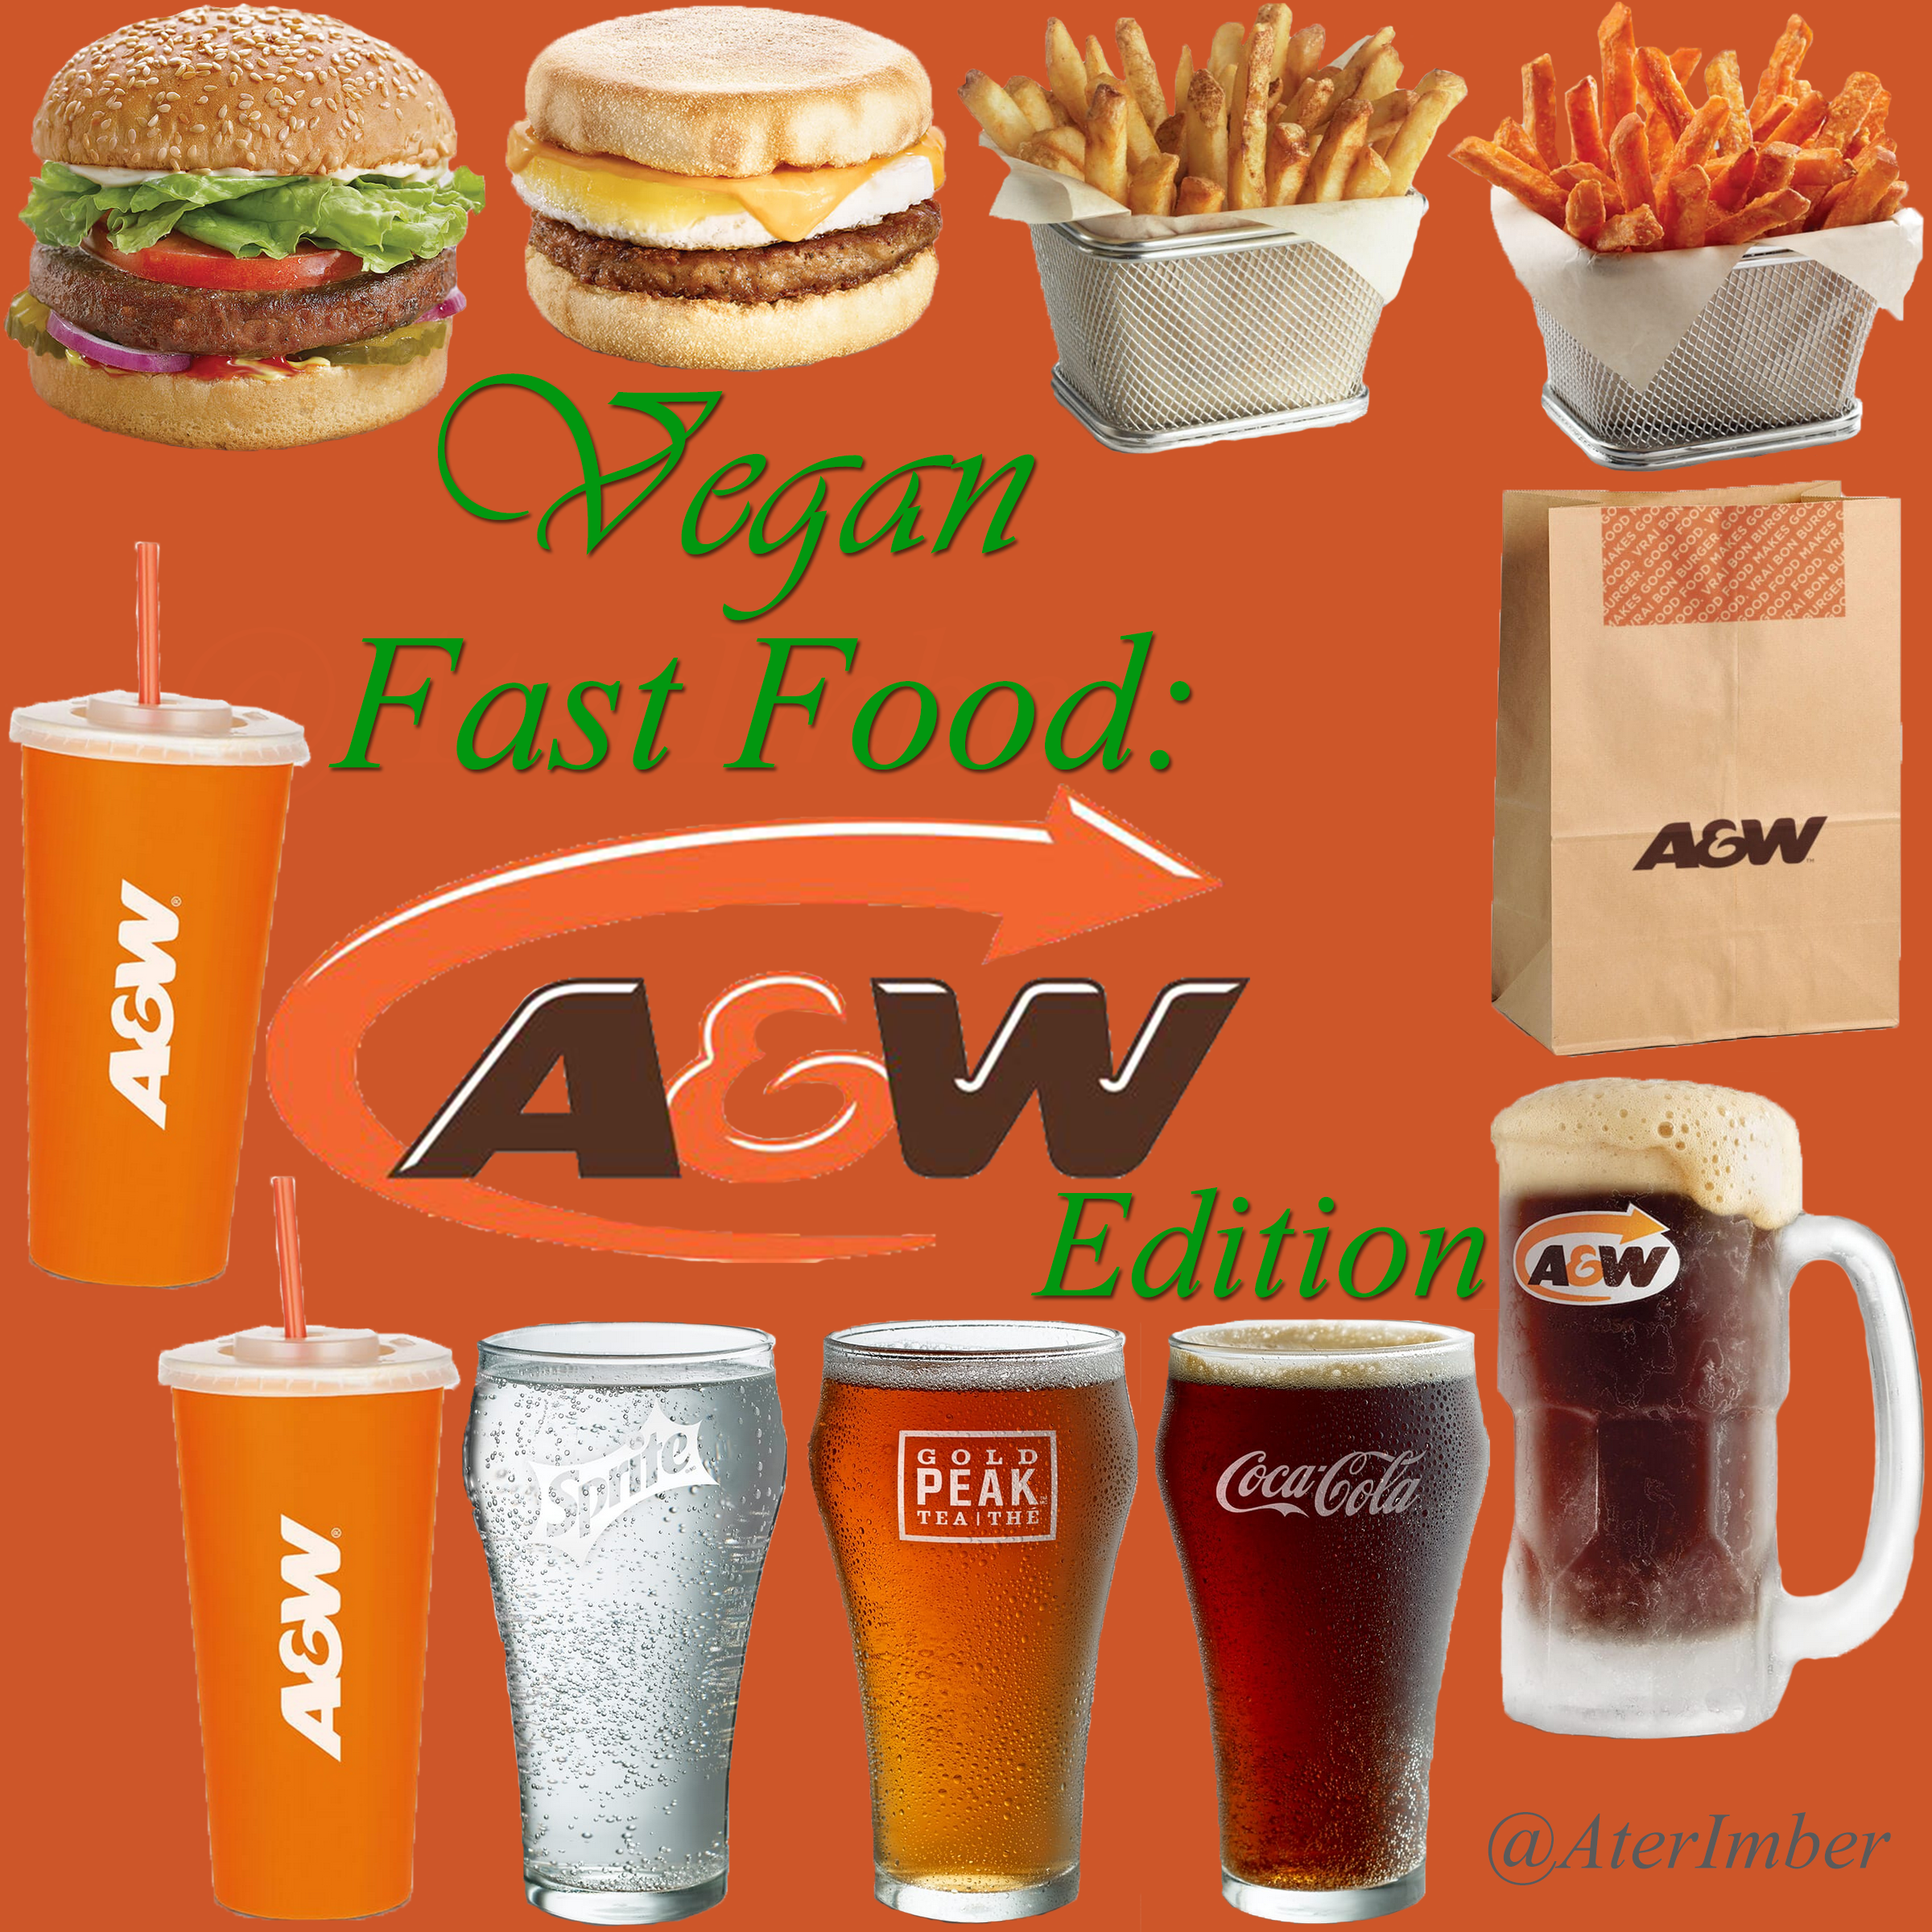 AterImber.com - The Veg Life - Vegan Fast Food Series - A&W Edition - vegan fast food, vegan food, fast food, a&w, takeout